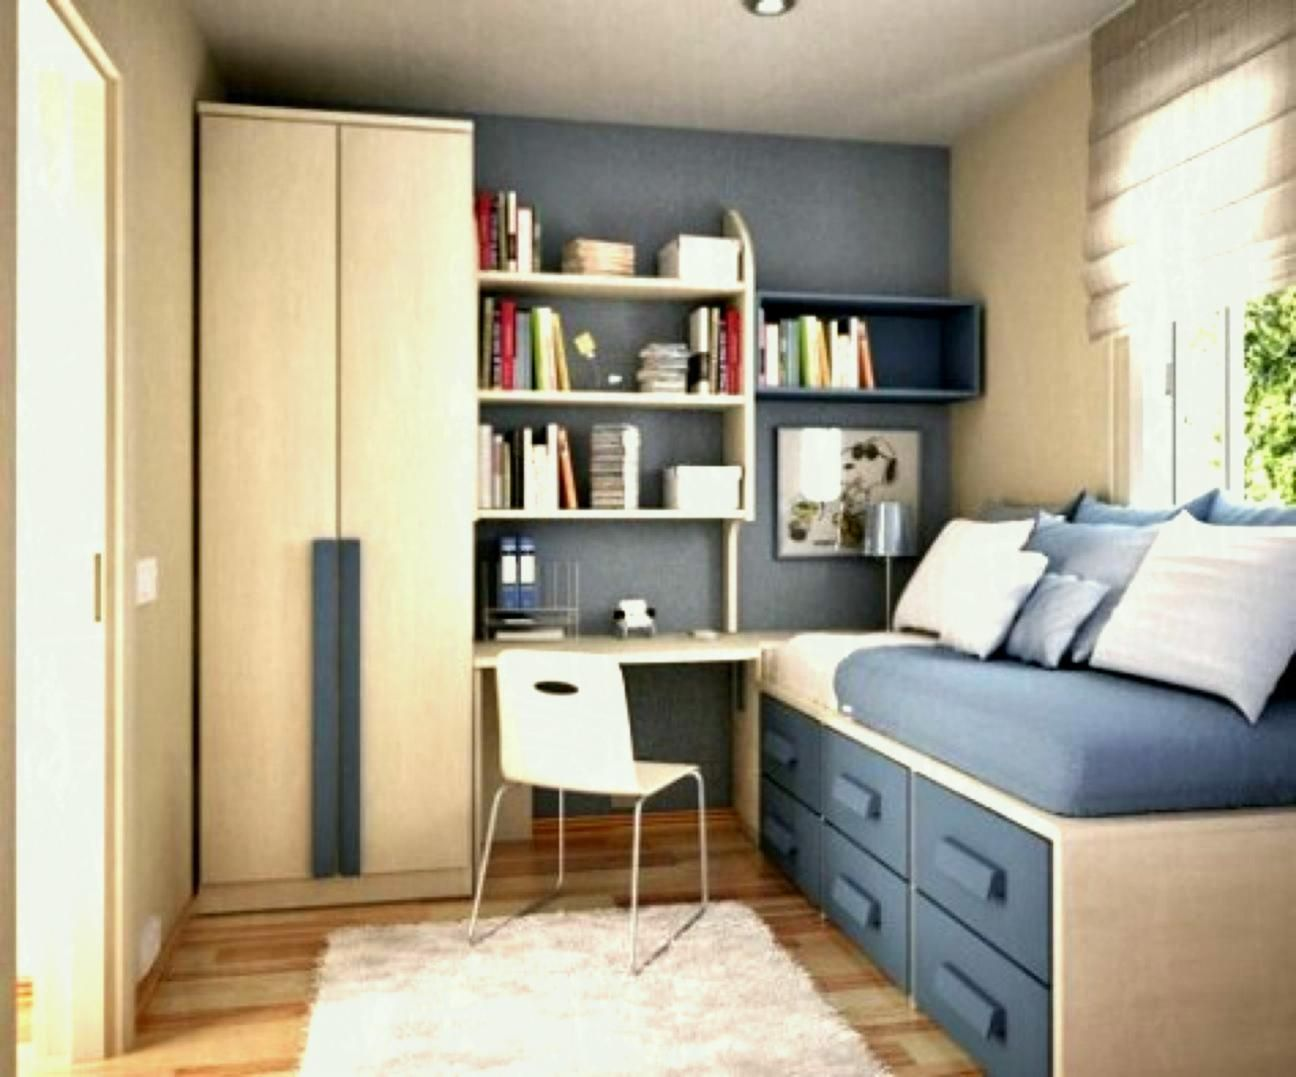 Bedroom Compact Bedroom Ideas For Teenage Girls With Medium Small Room Design Modern Bedroom Design Bedroom Interior